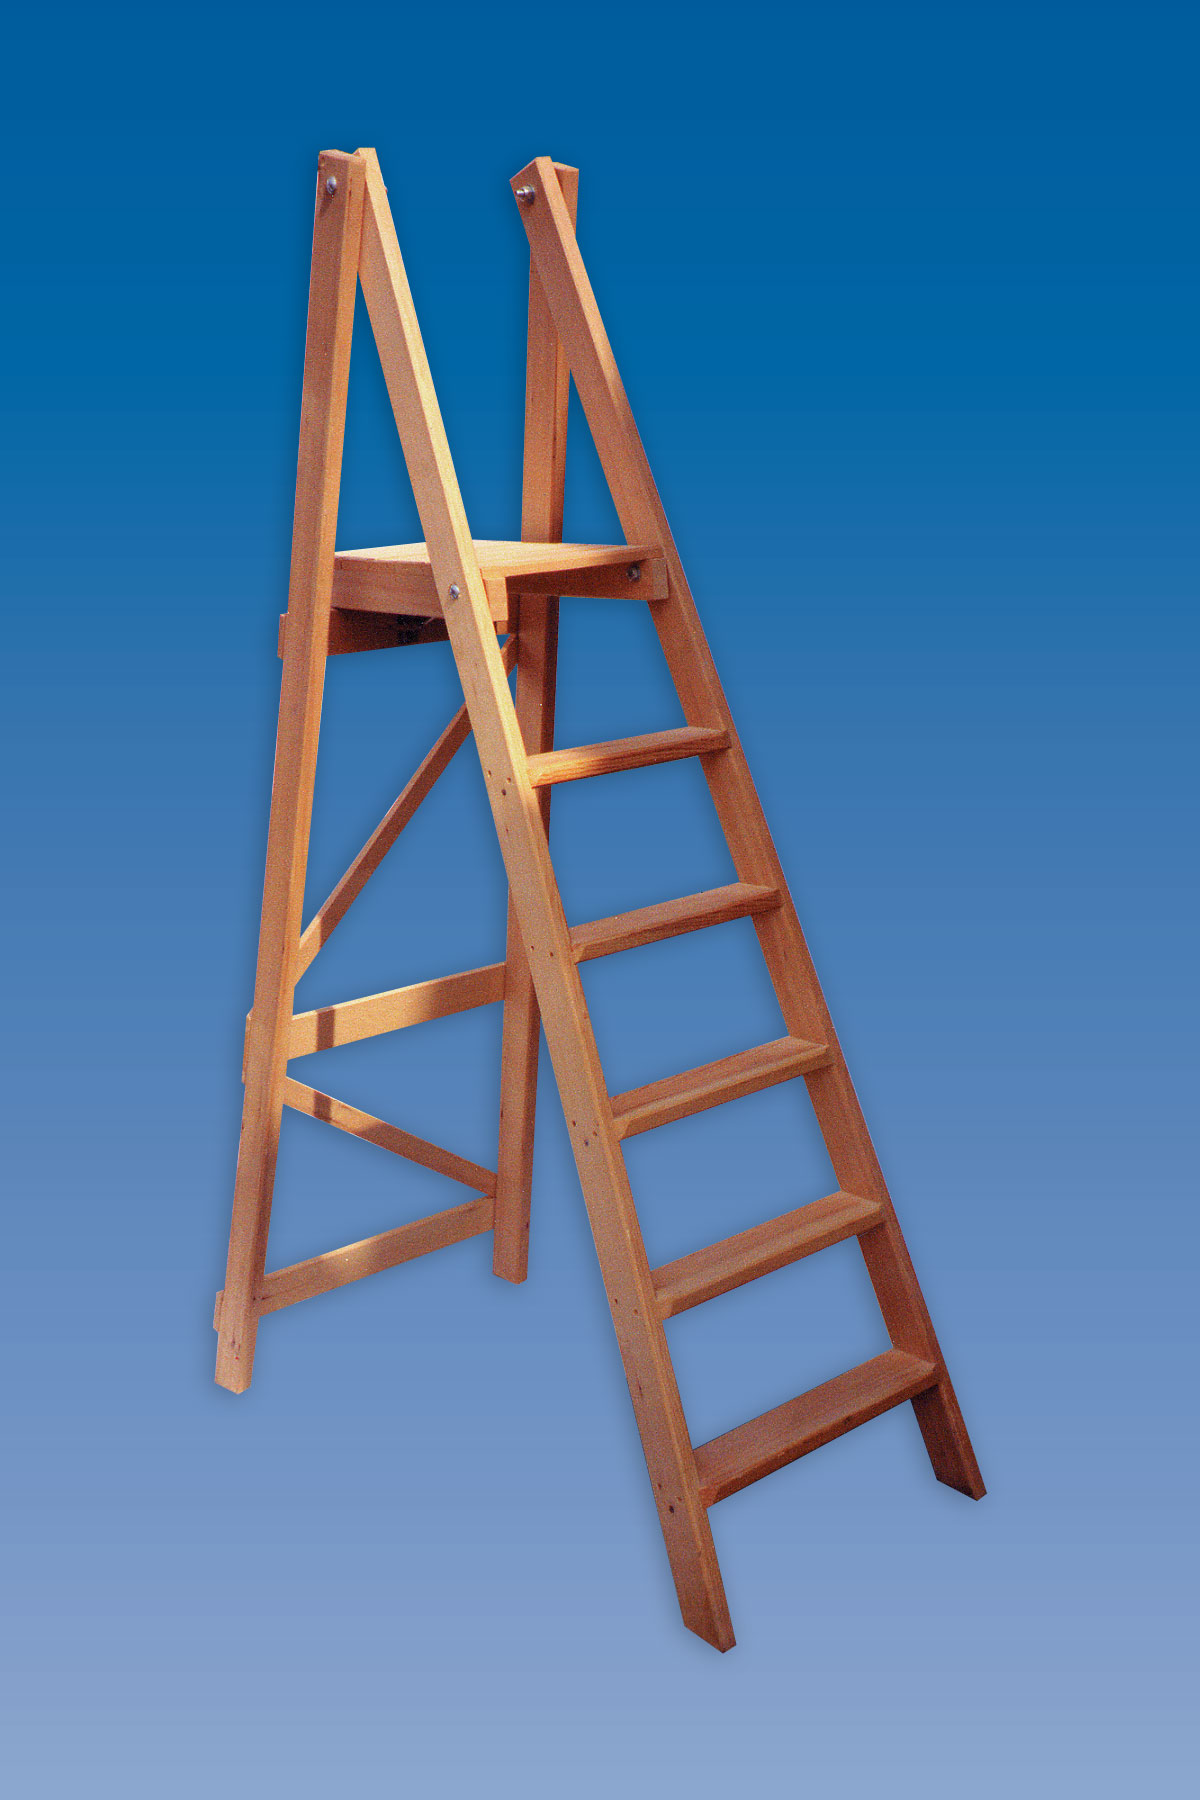 Industrial Platform Wooden Step Ladders Hulley Ladders